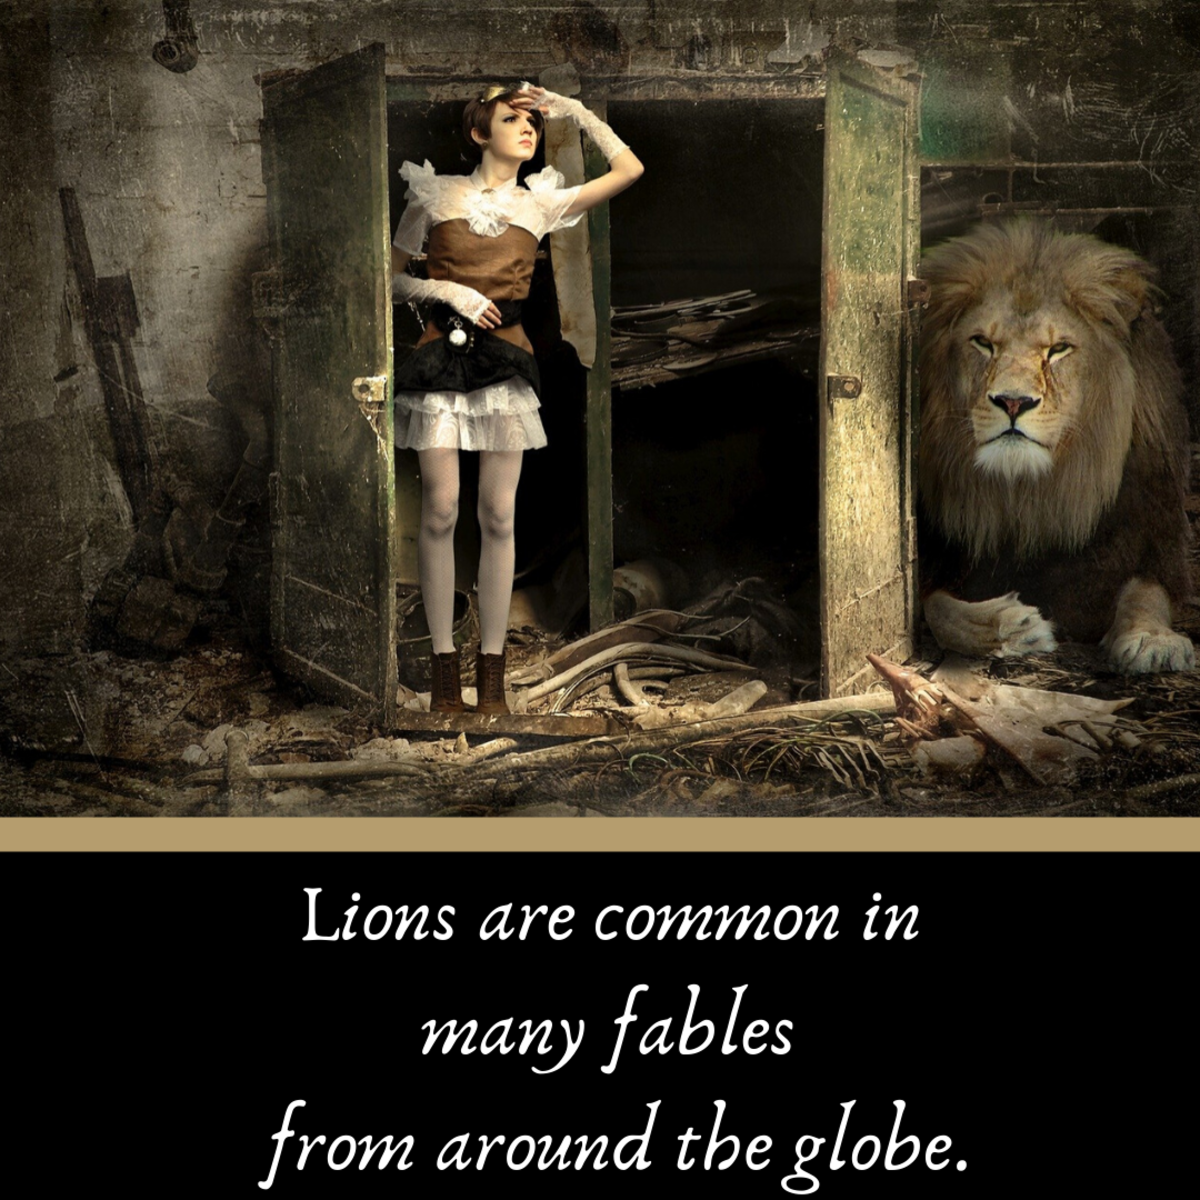 Lions show up in fables all over the world.